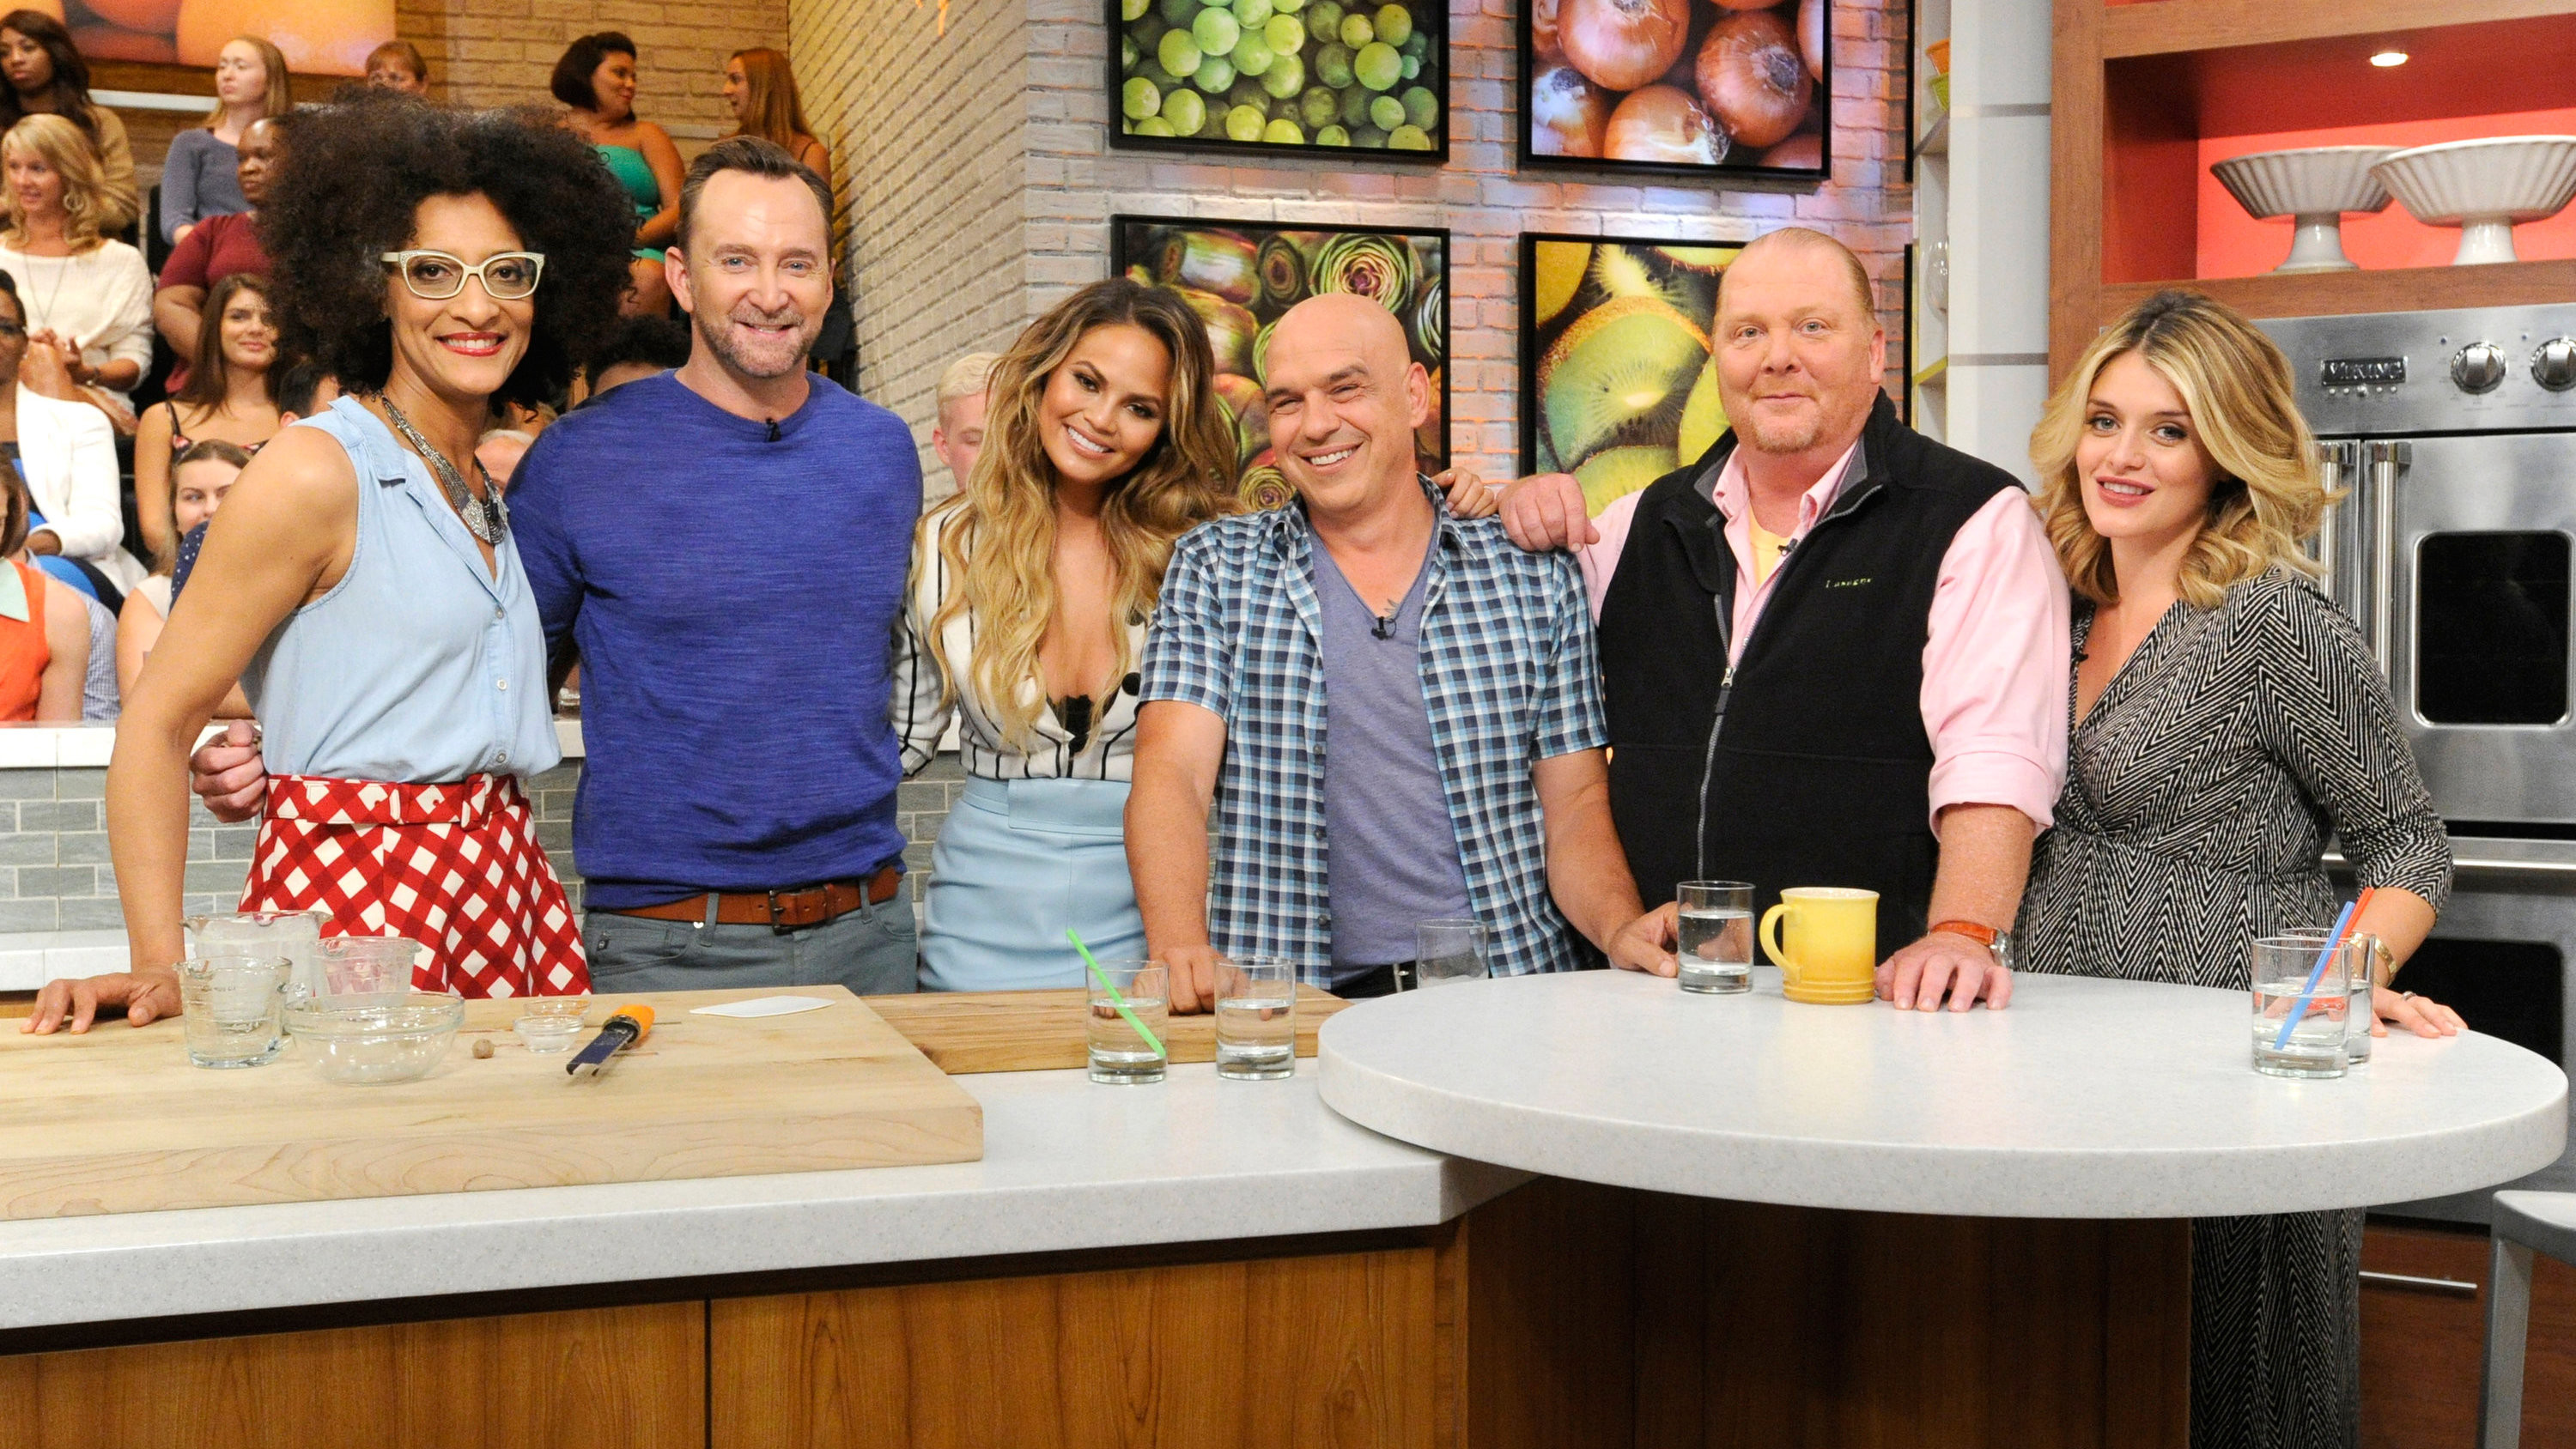 The Chew the chew's schedule for the week of 09/14: chrissy teigen, chris